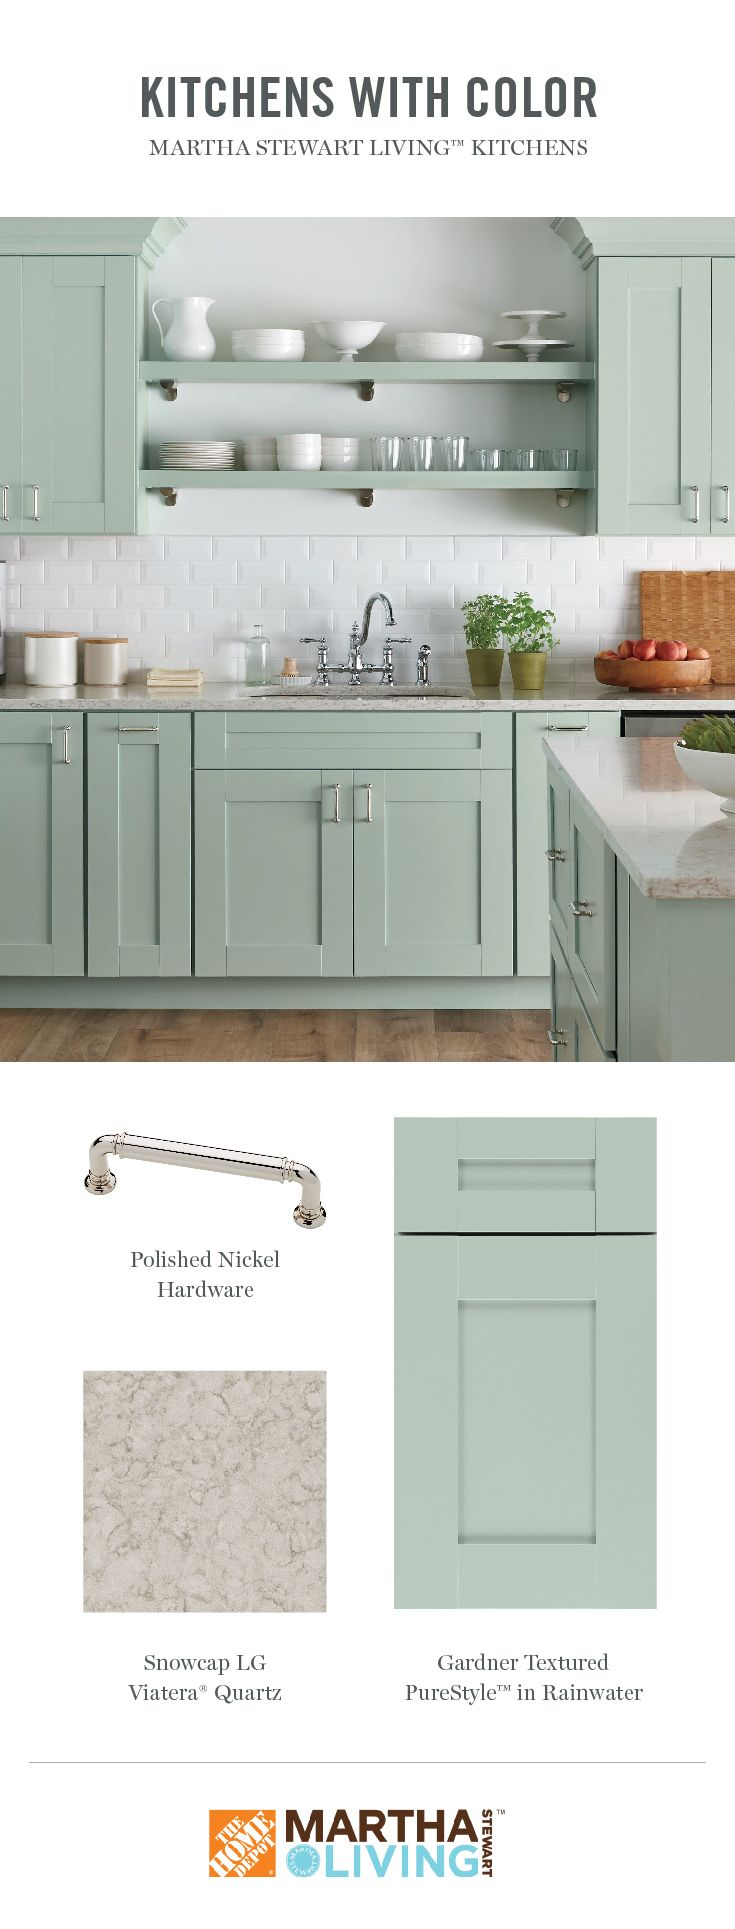 For A Change From Wood Tones Martha Stewart Living Purestyle Color Options Are Shown Off To Great Kitchen Design Color Kitchen Renovation New Kitchen Cabinets